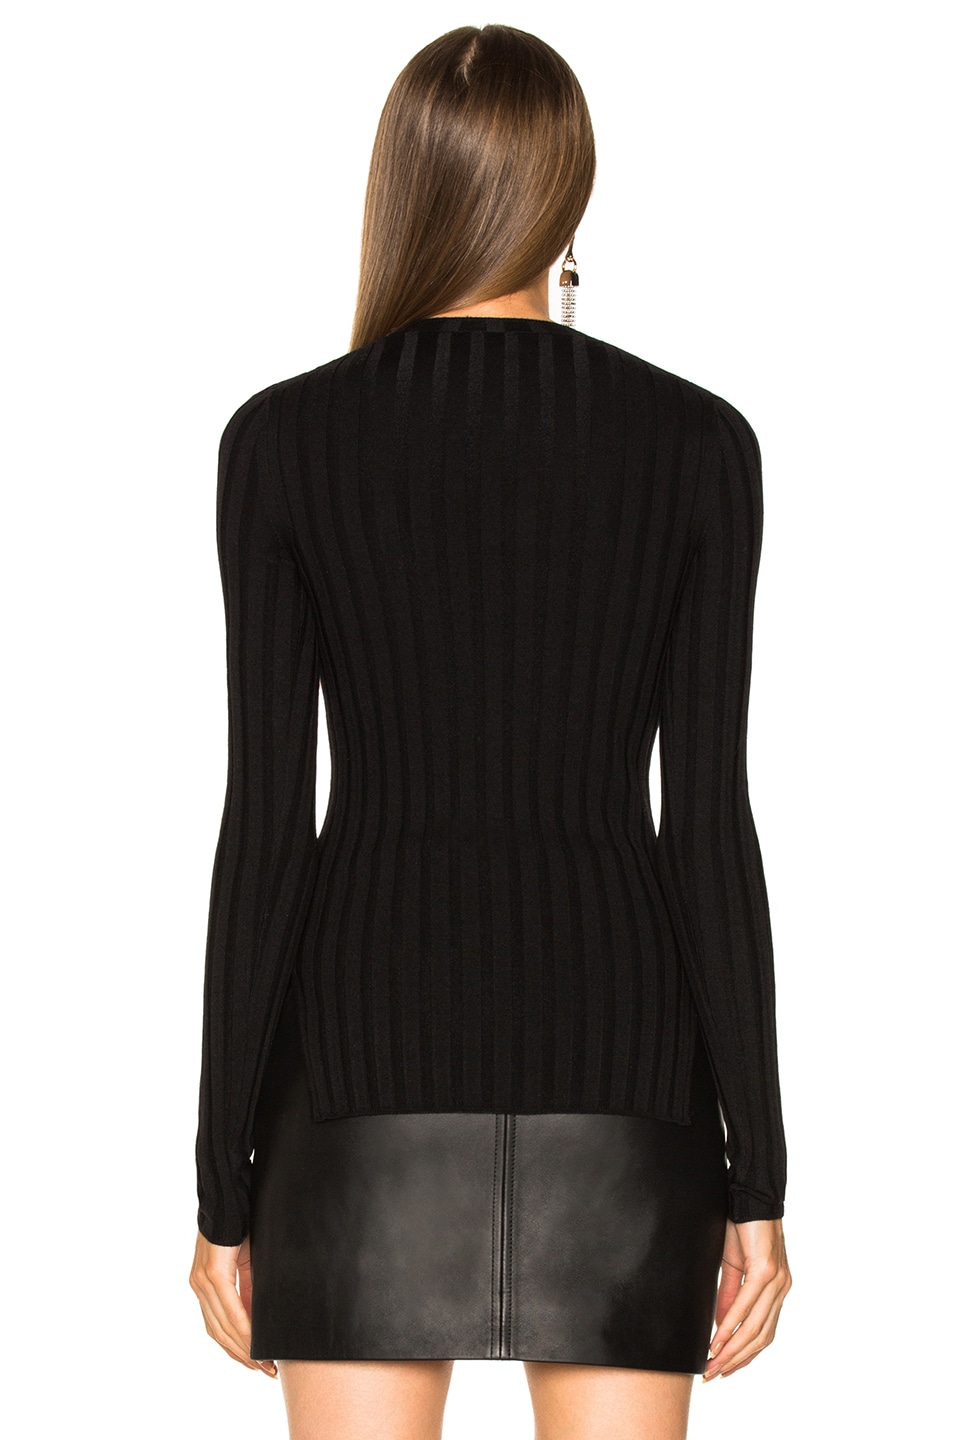 Carina Knit Top in Black Acne Studios New Sale Online For Cheap Buy Cheap Free Shipping b9fFzHi